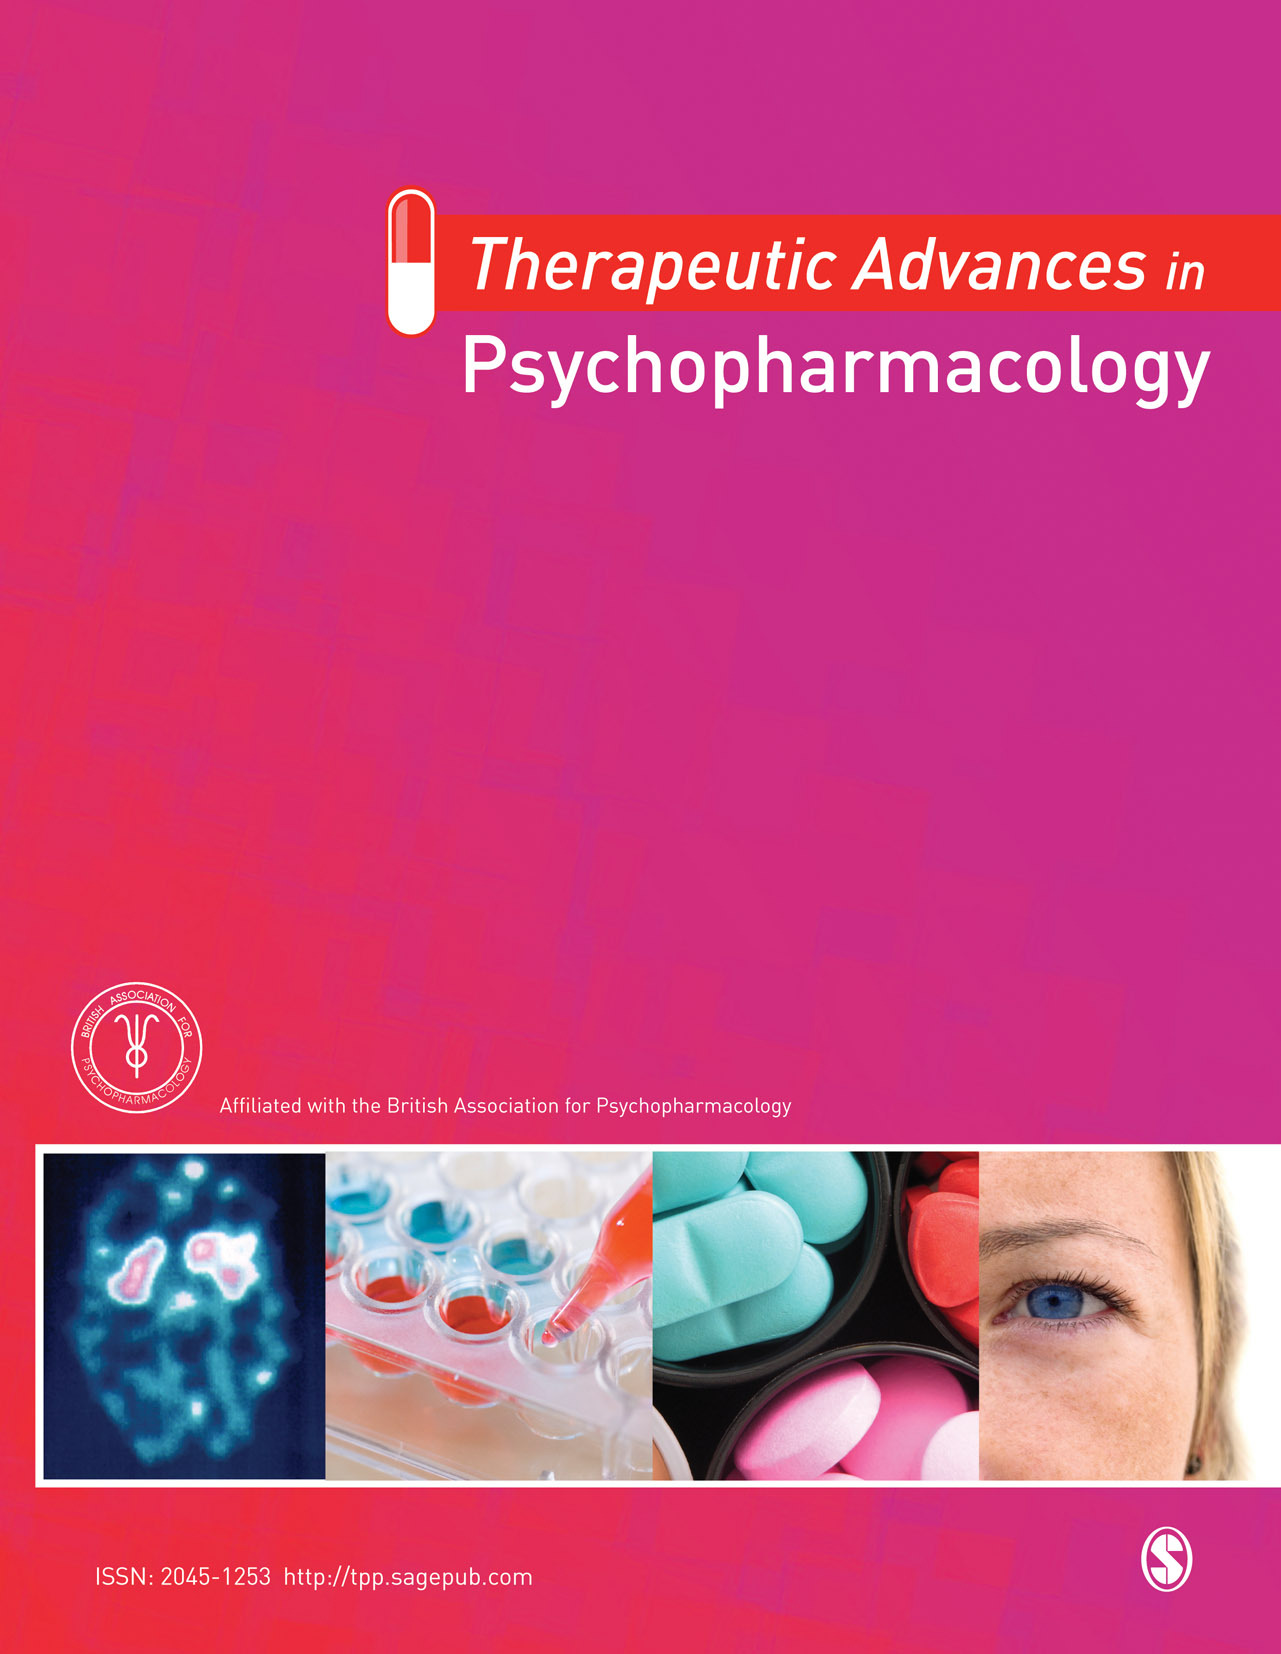 Therapeutic Advances in Psychopharmacology